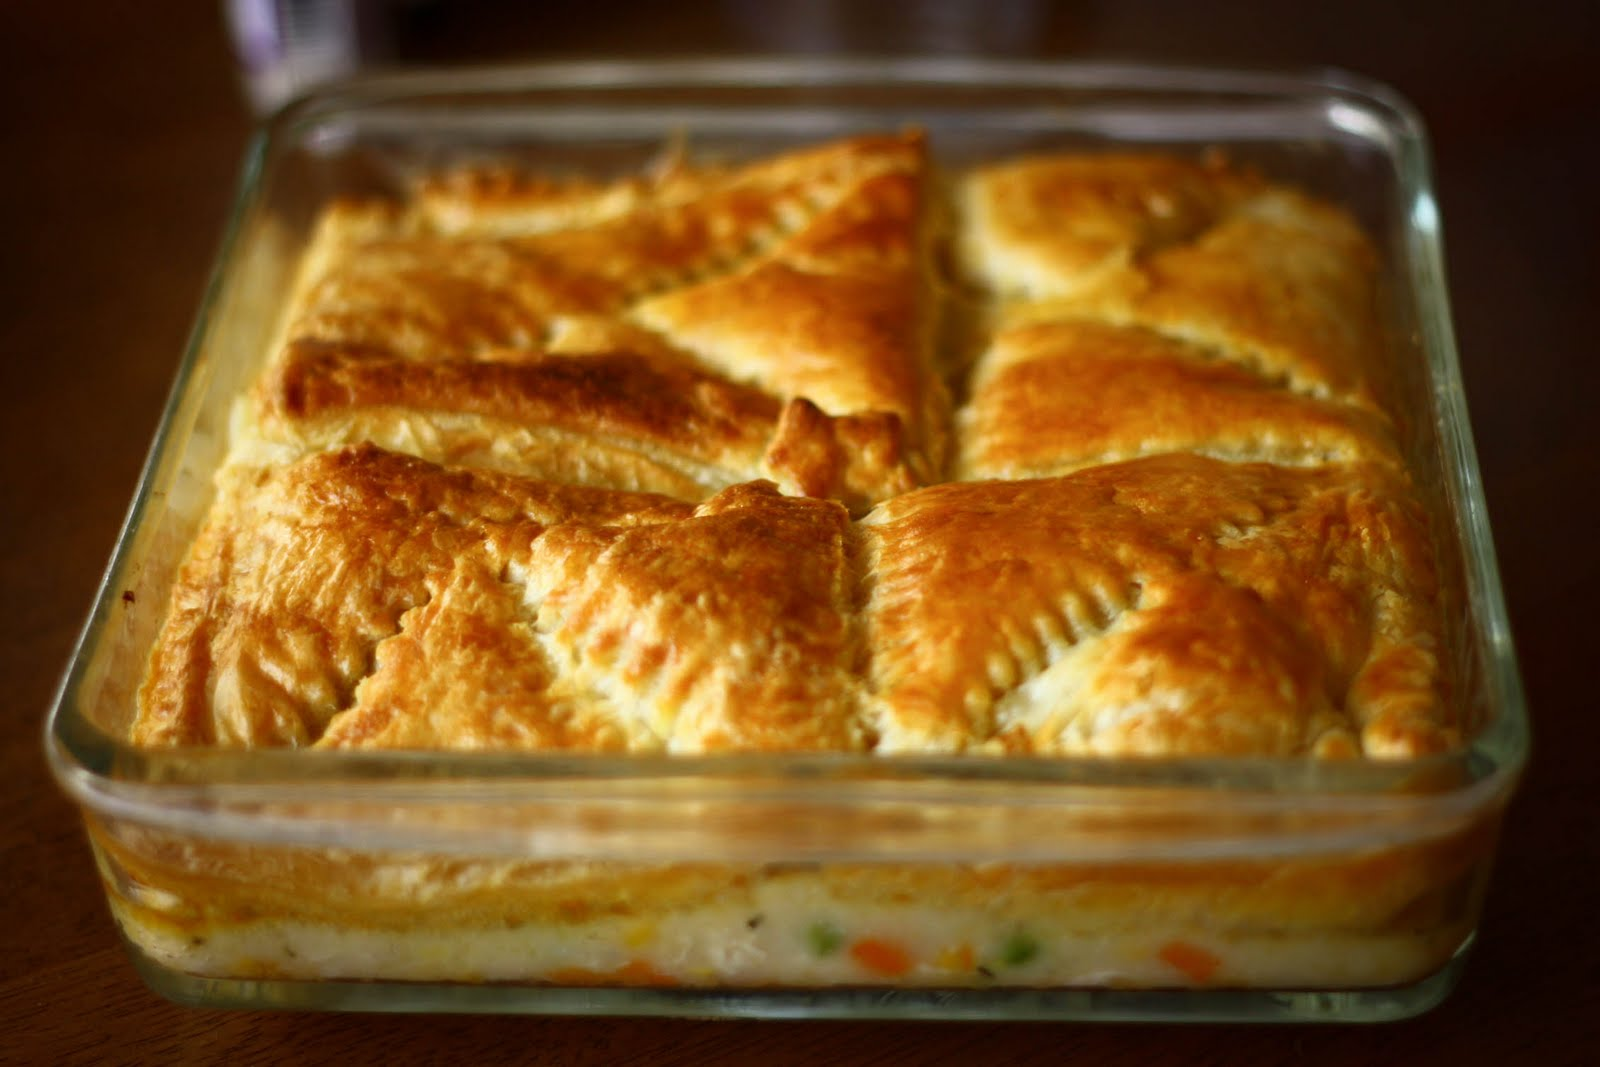 Reminiscent of the frozen chicken pot pies I used to eat when I was ...